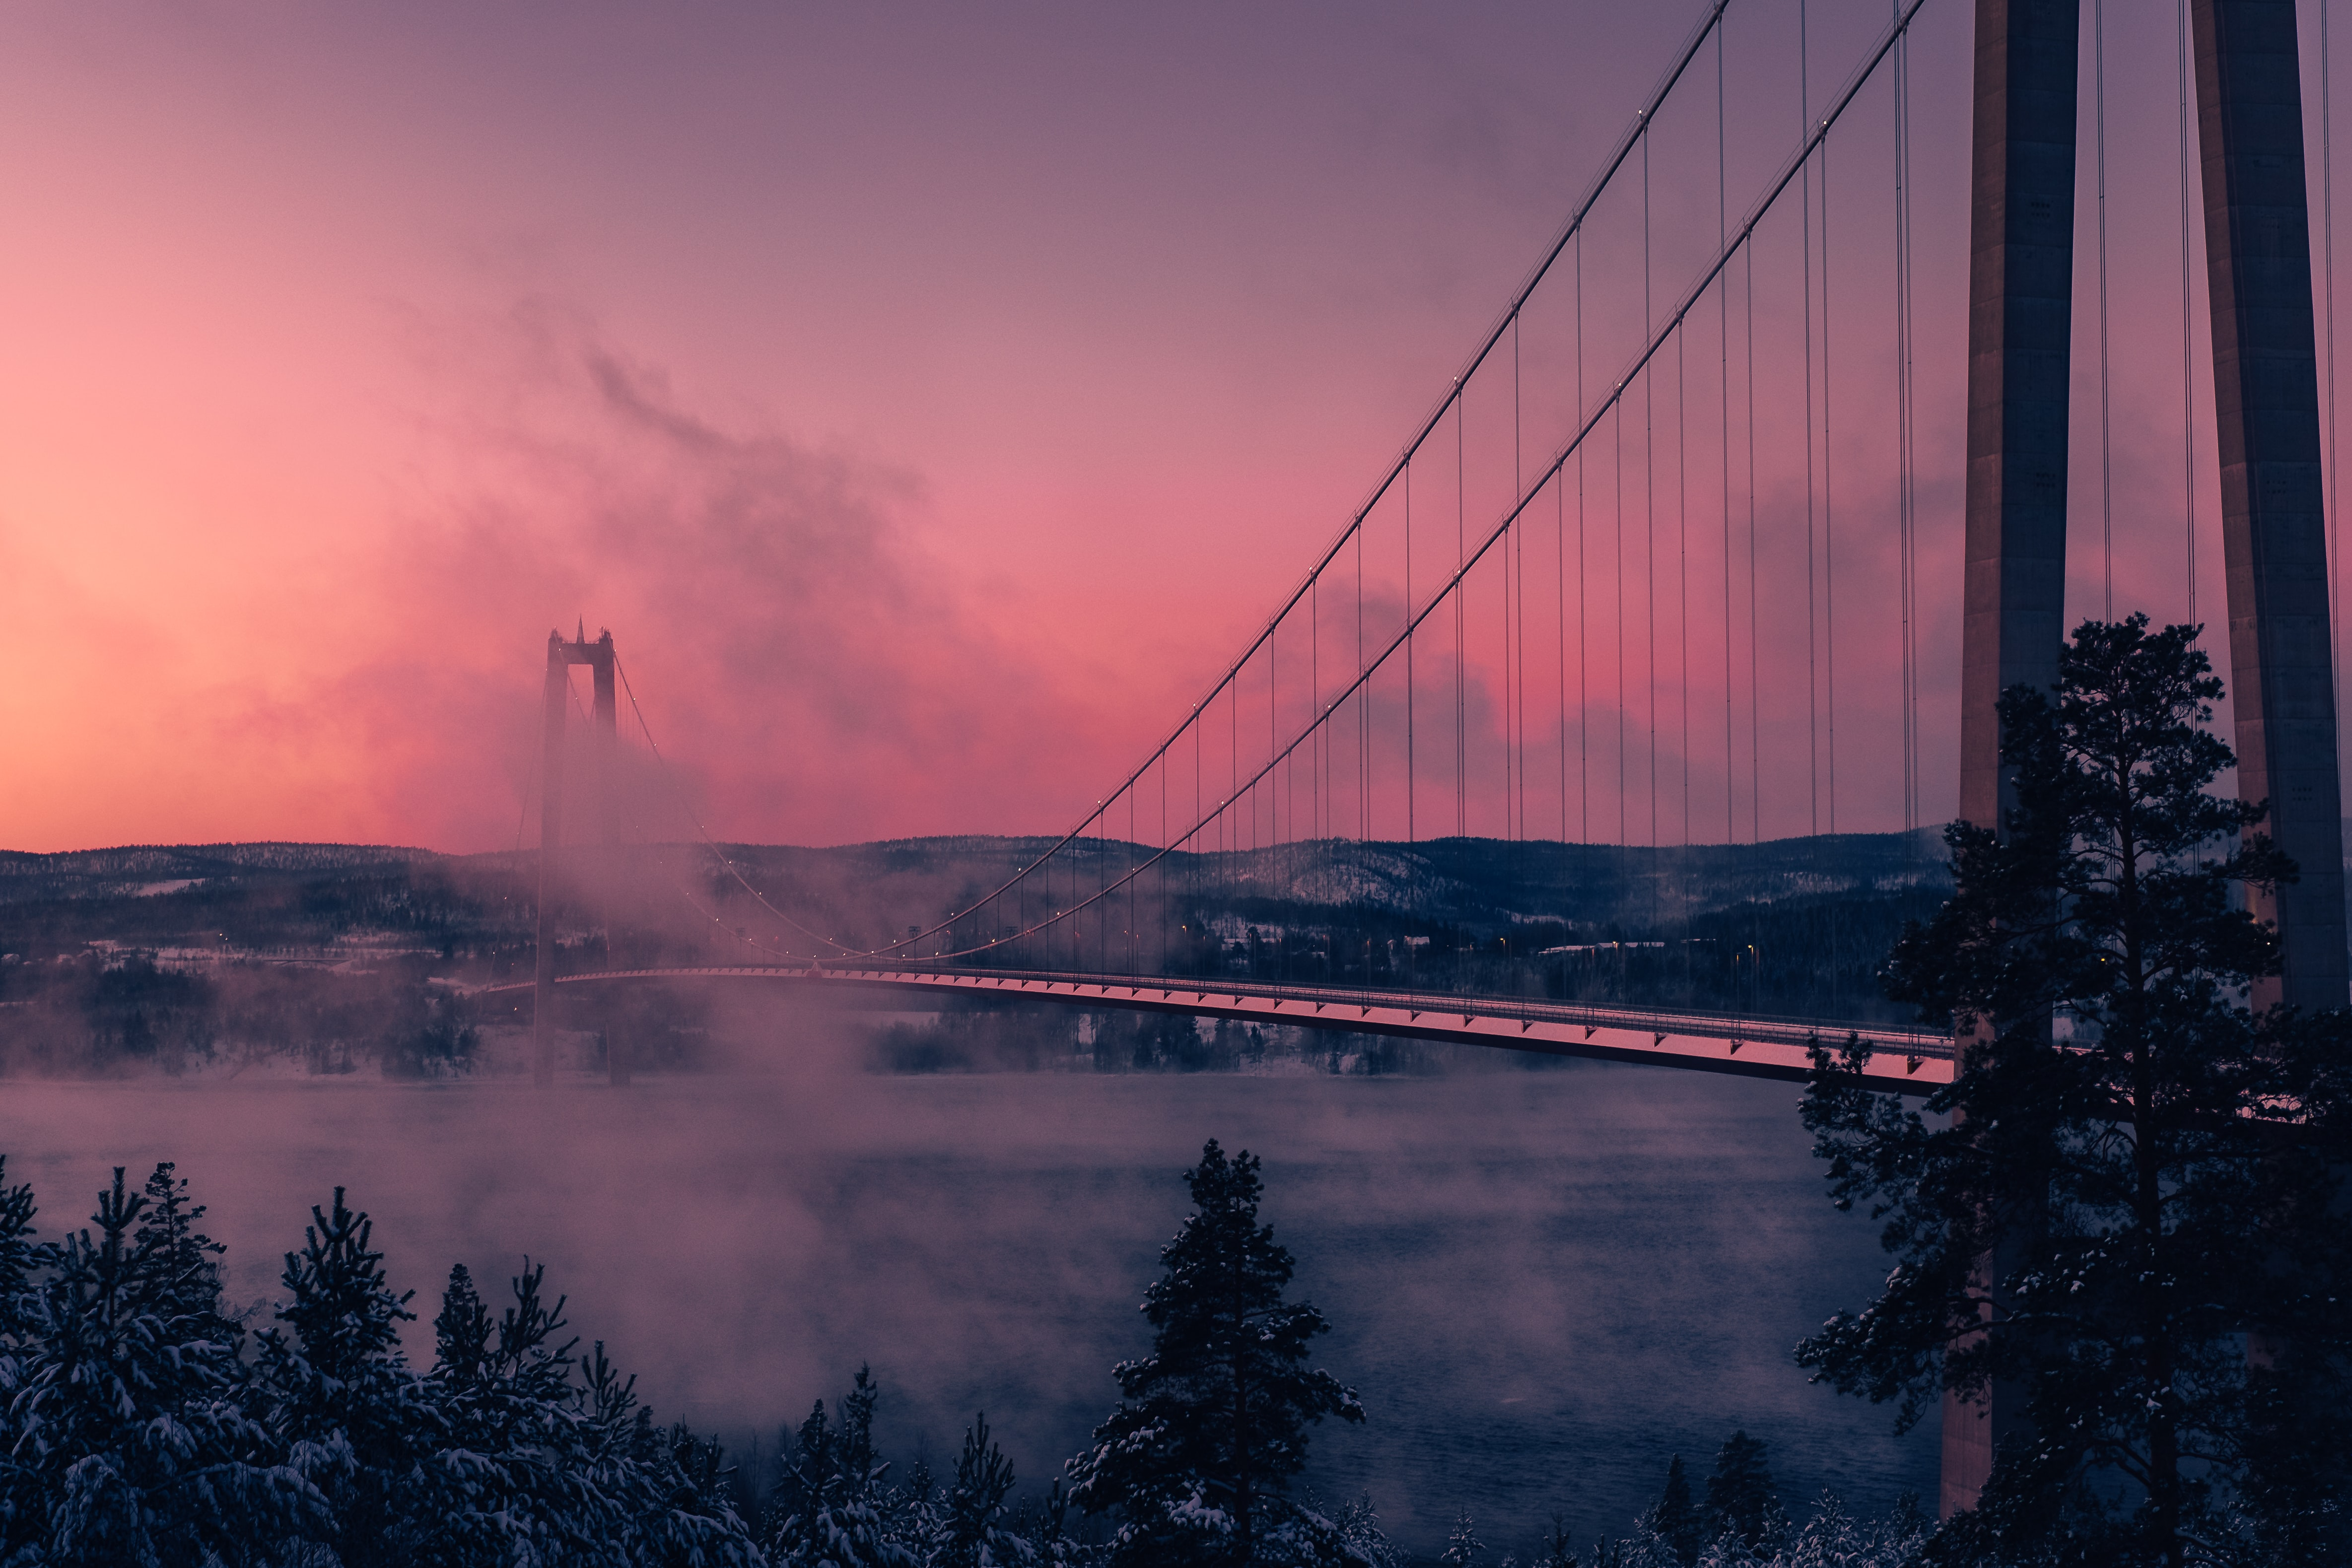 Clouds cover the Högakustenbron suspension bridge as a pink sunset covers the sky